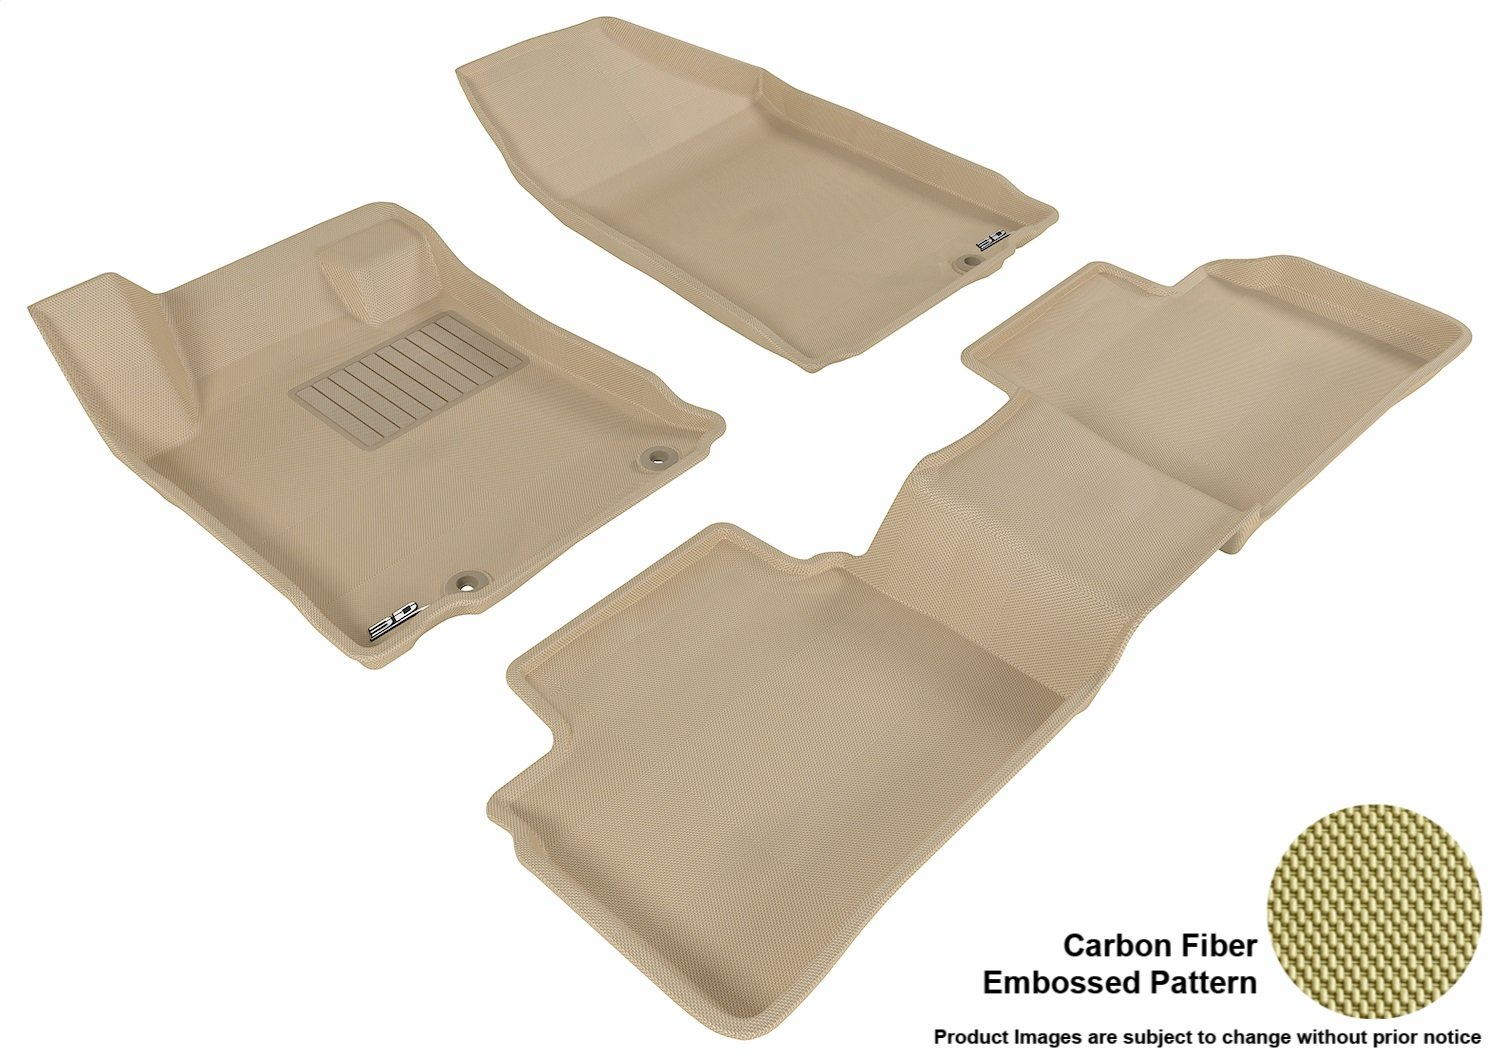 Black Kagu Rubber L1NS05711509 3D MAXpider Front Row Custom Fit All-Weather Floor Mat for Select Nissan Altima Models